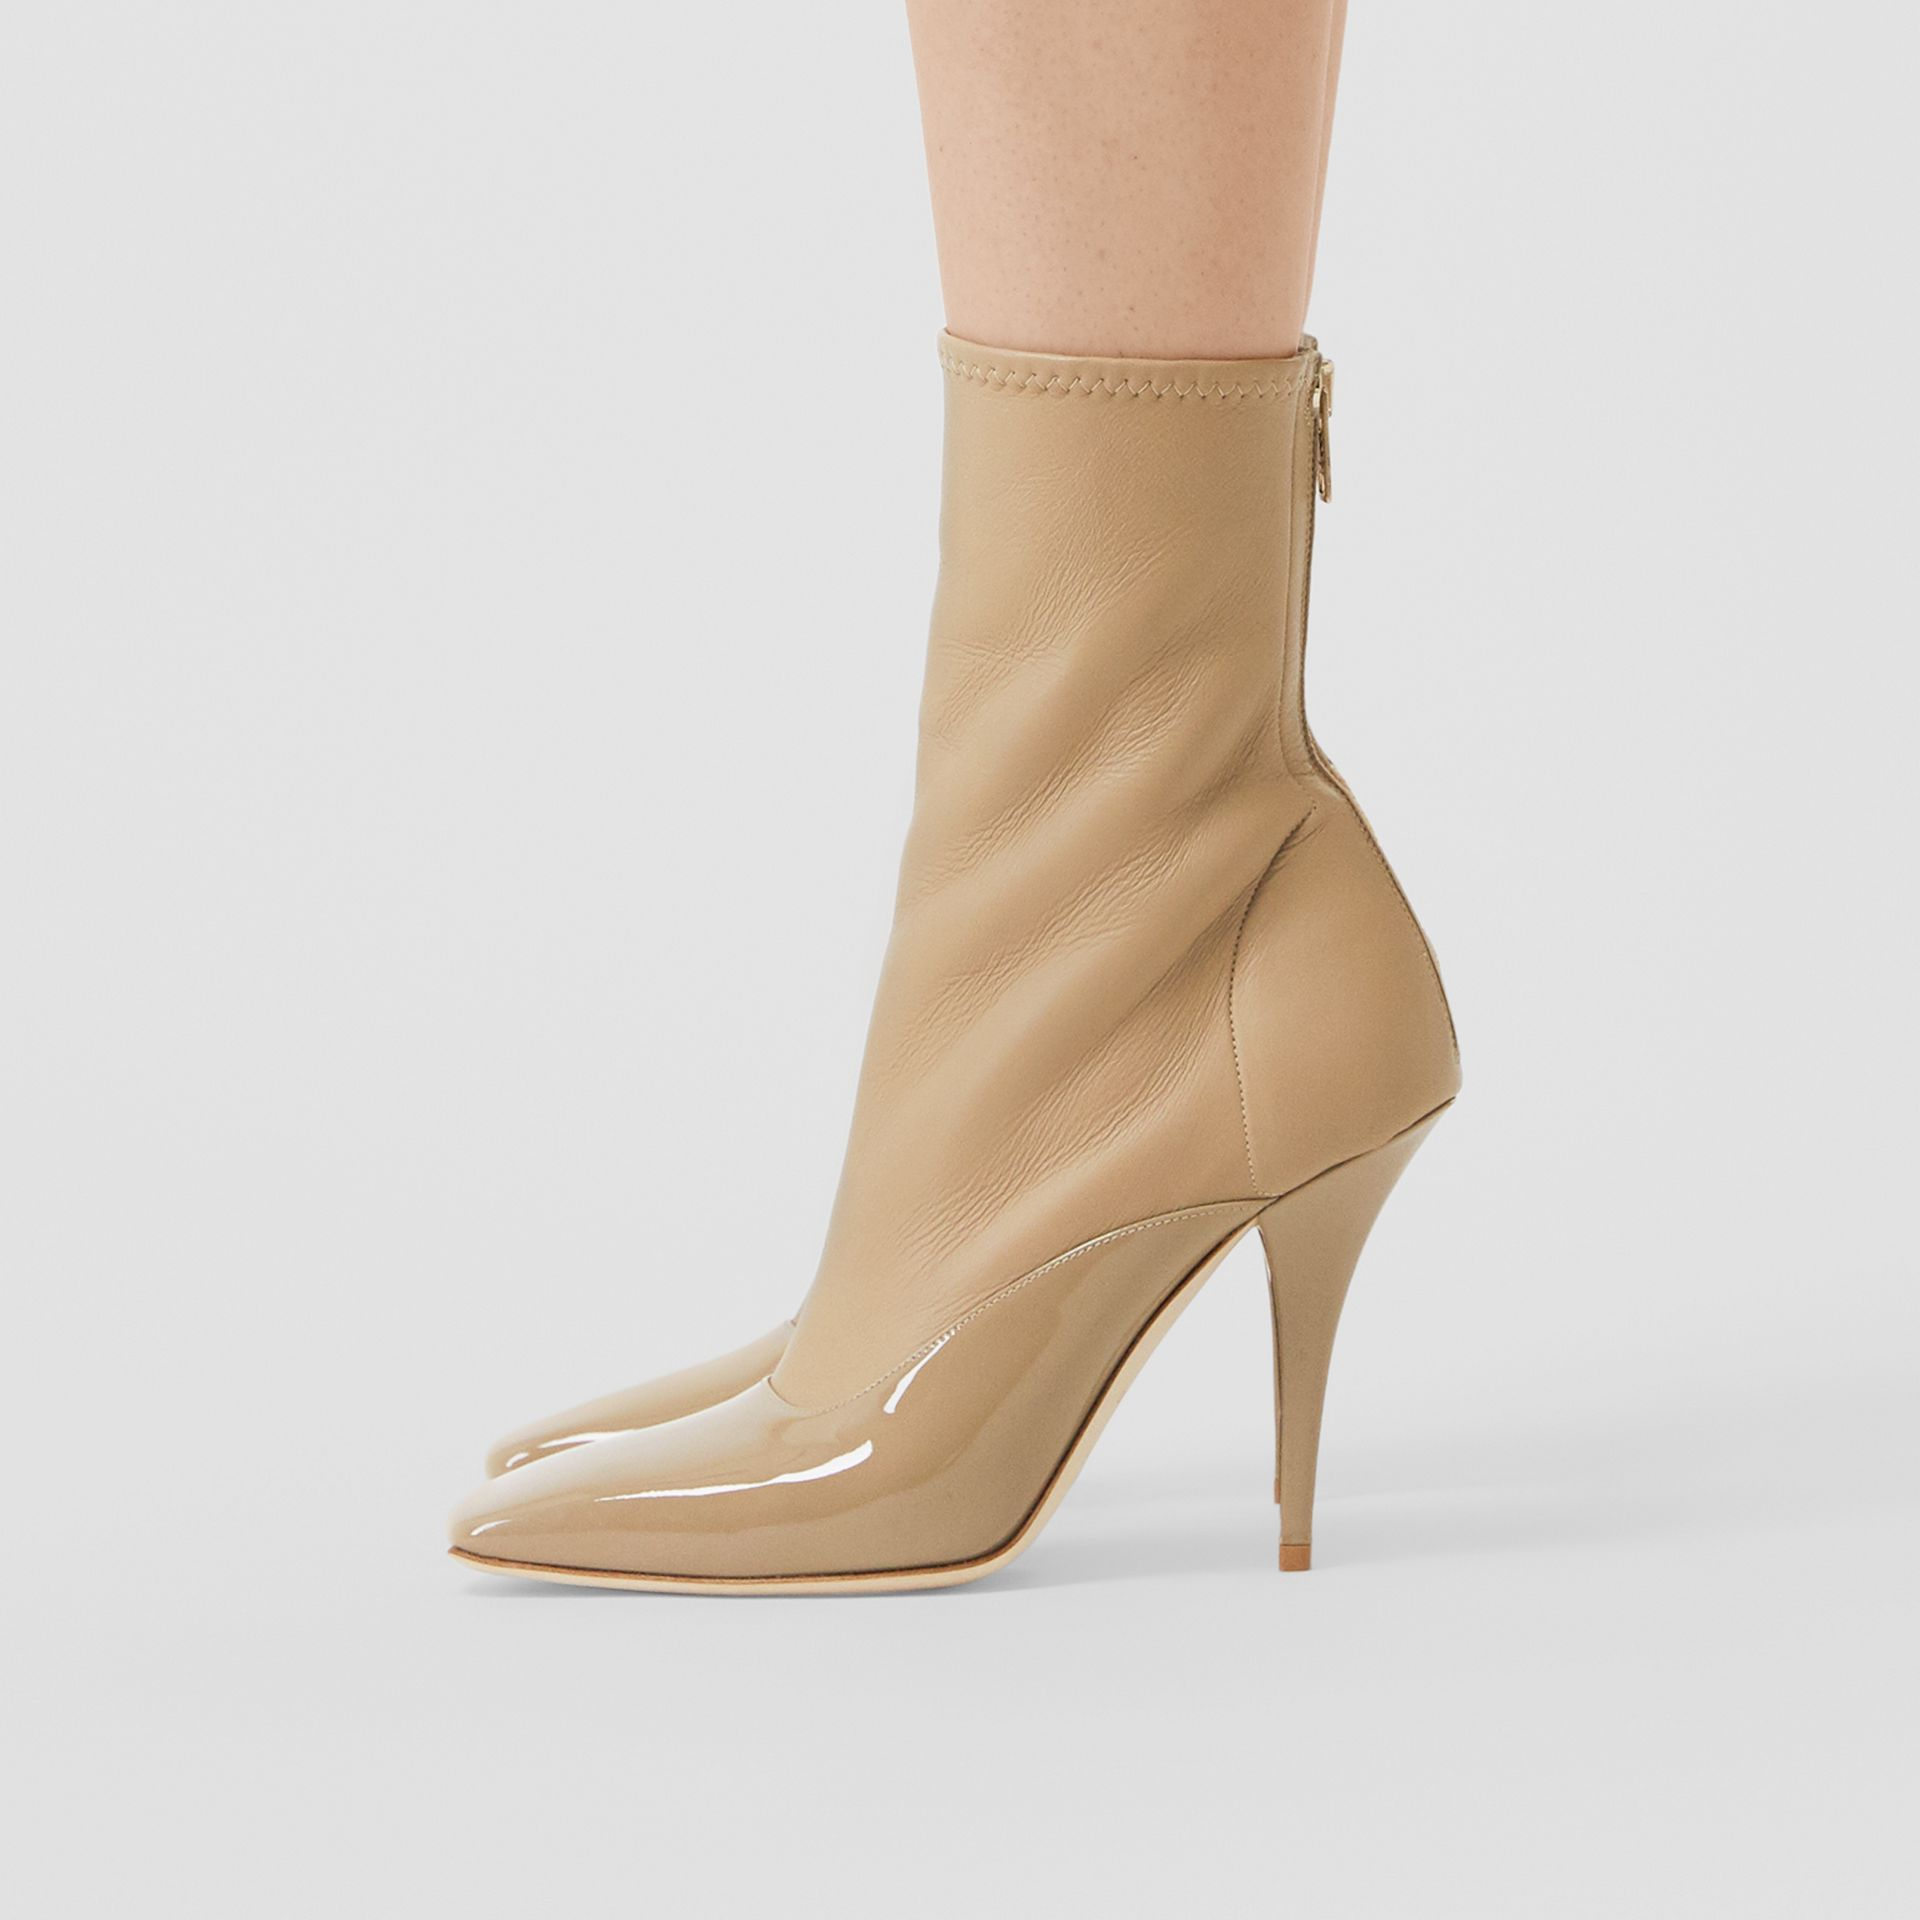 Lambskin and Patent Leather Ankle Boots in Dark Honey - Women | Burberry - gallery image 2